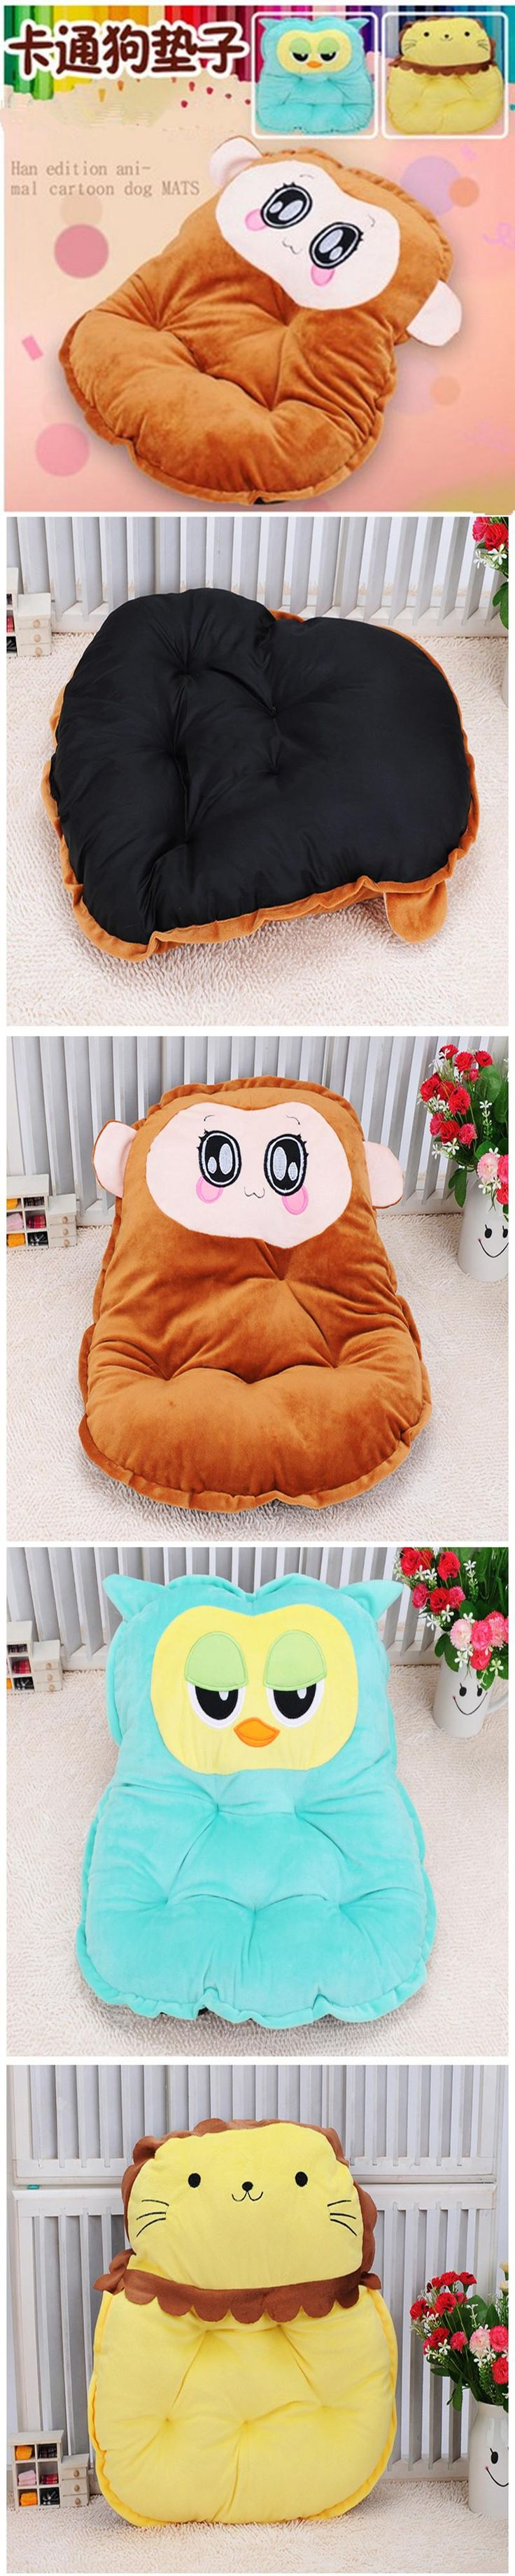 new pp cotton cute dog bed animal cartoon shaped pet dog sofa puppy house flannel kennel